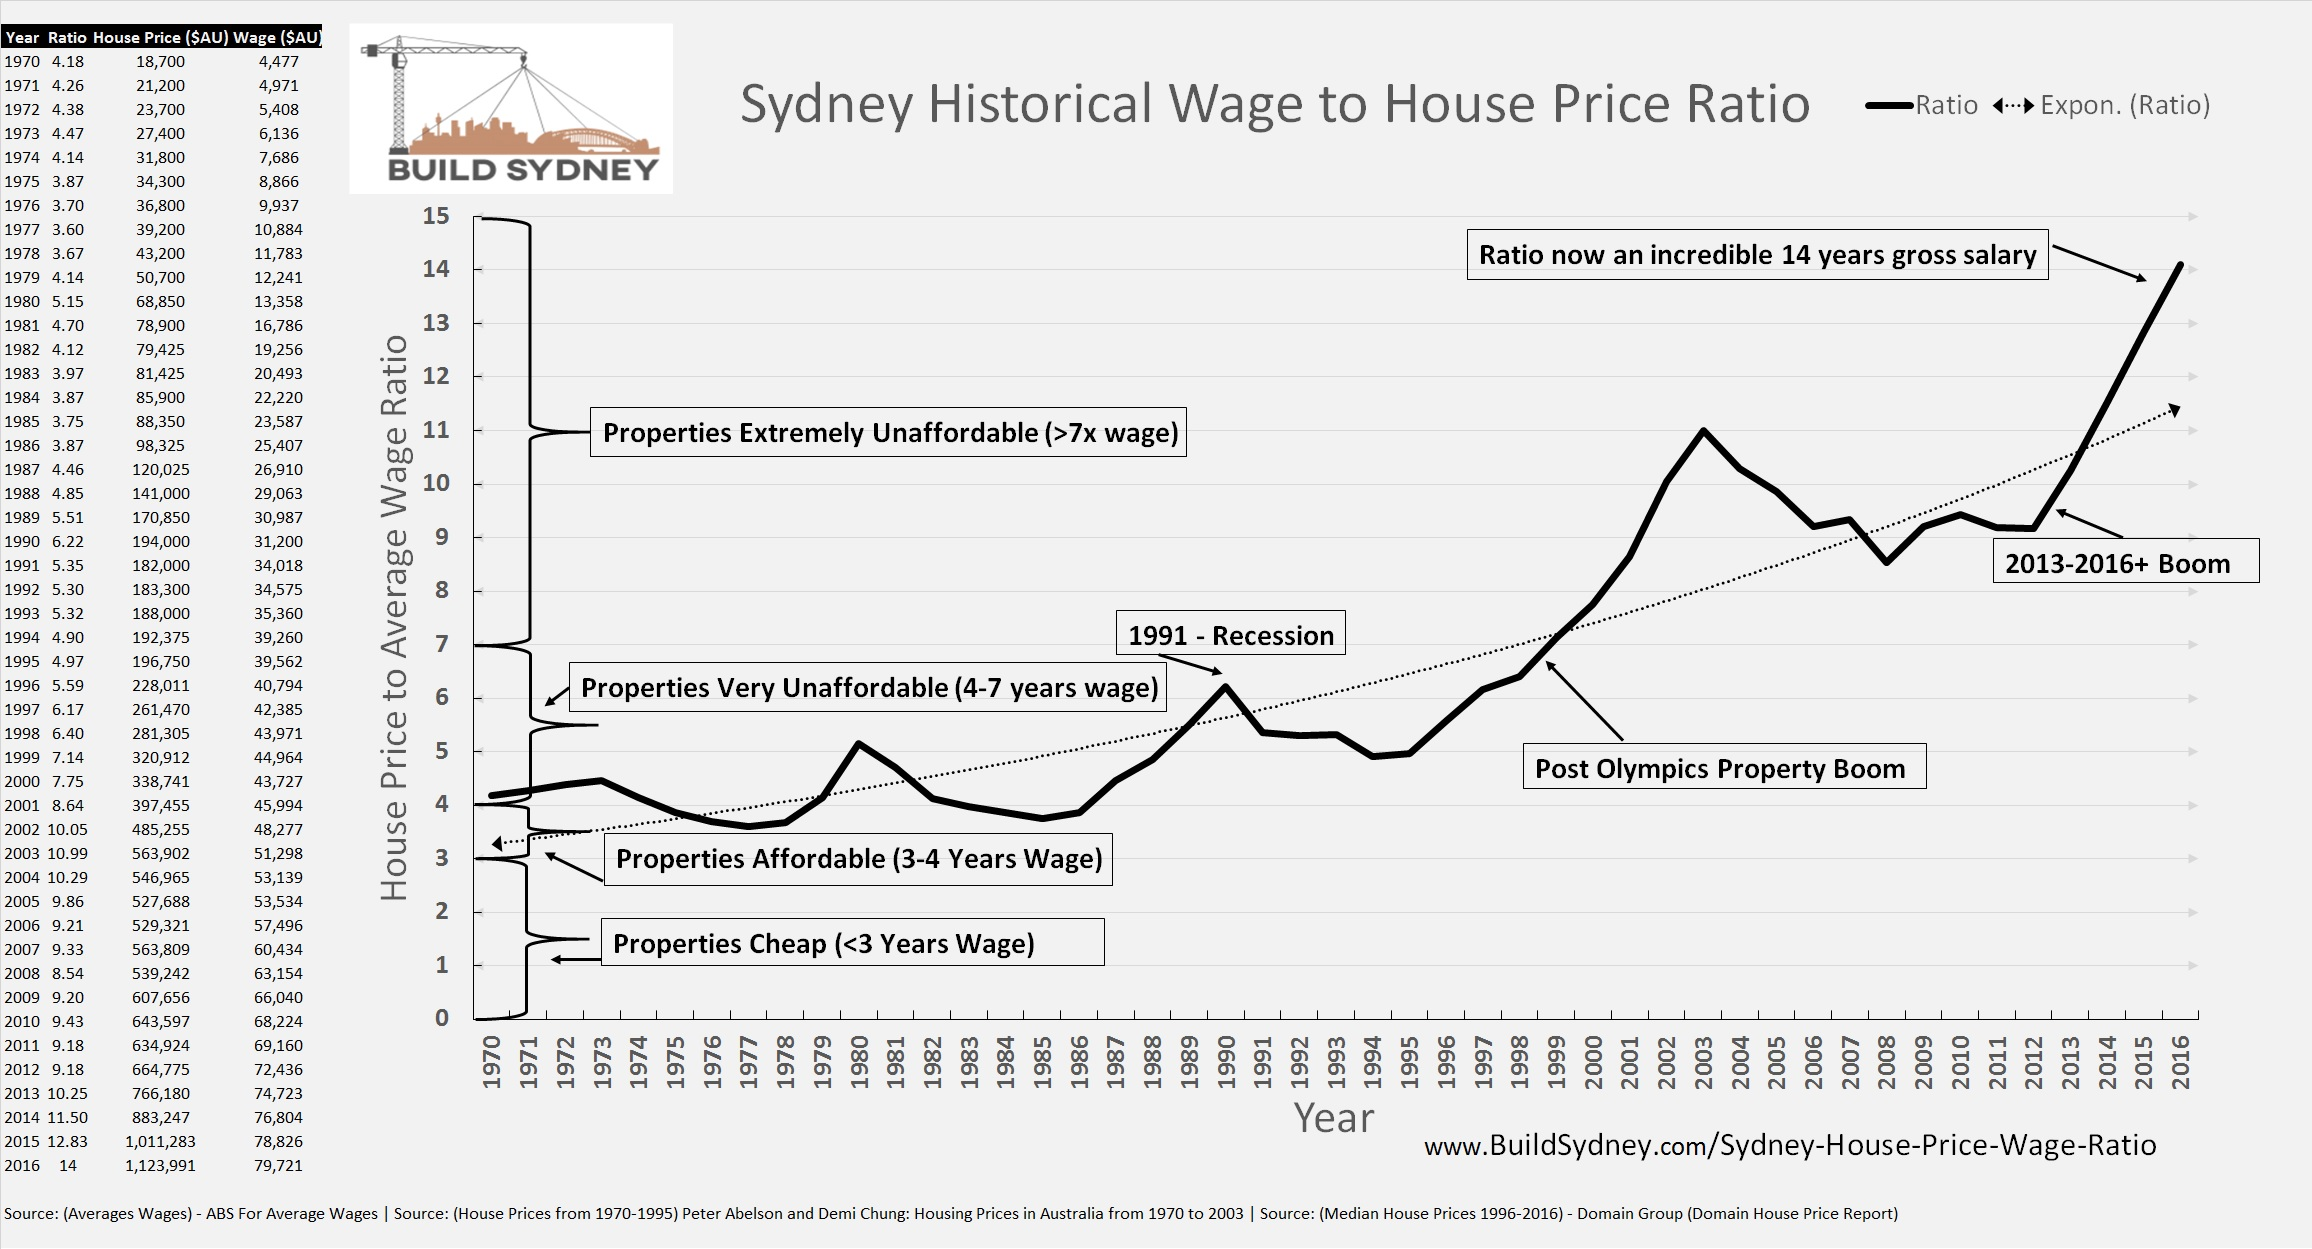 Sydney House Price to Average Wage Ratio